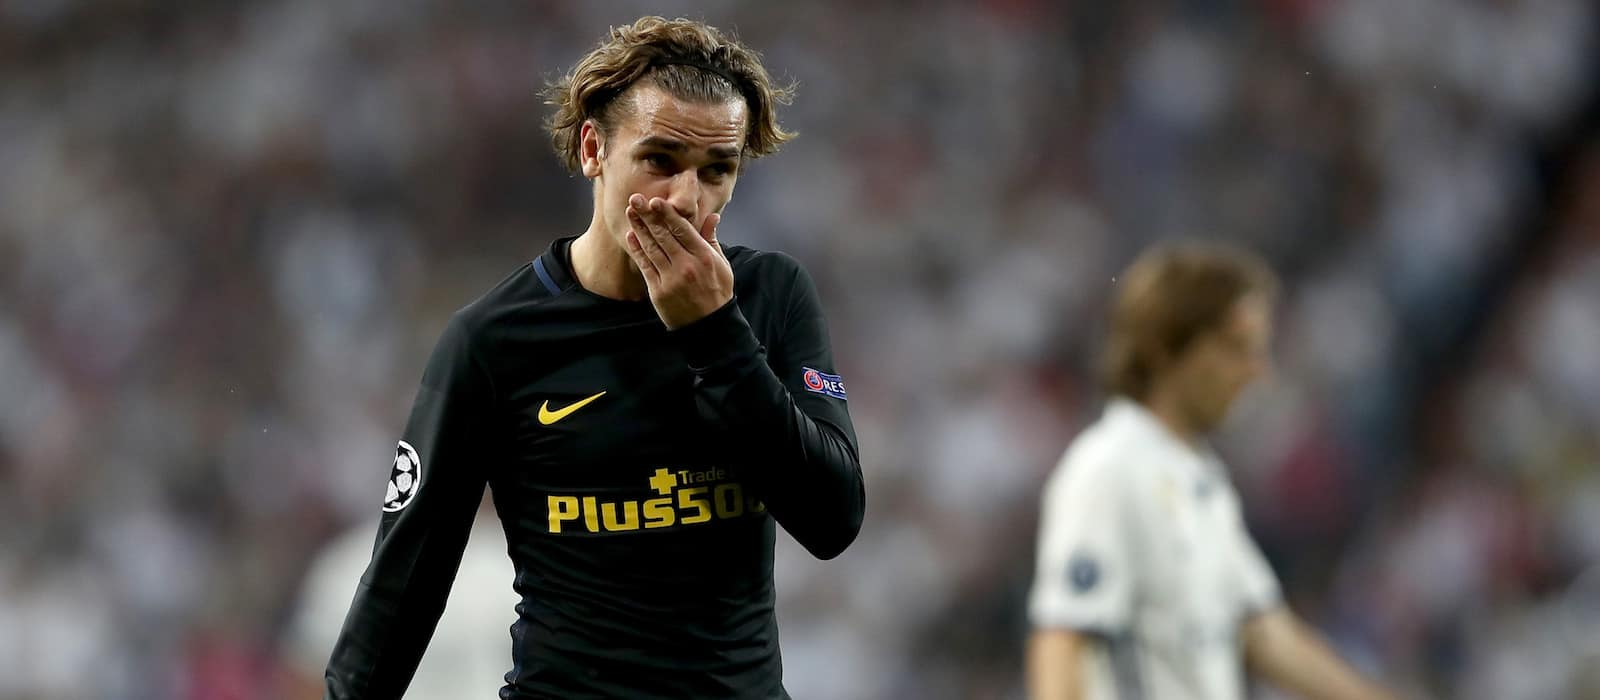 Atletico Madrid president Enrique Cerezo insists Antoine Griezmann is not for sale